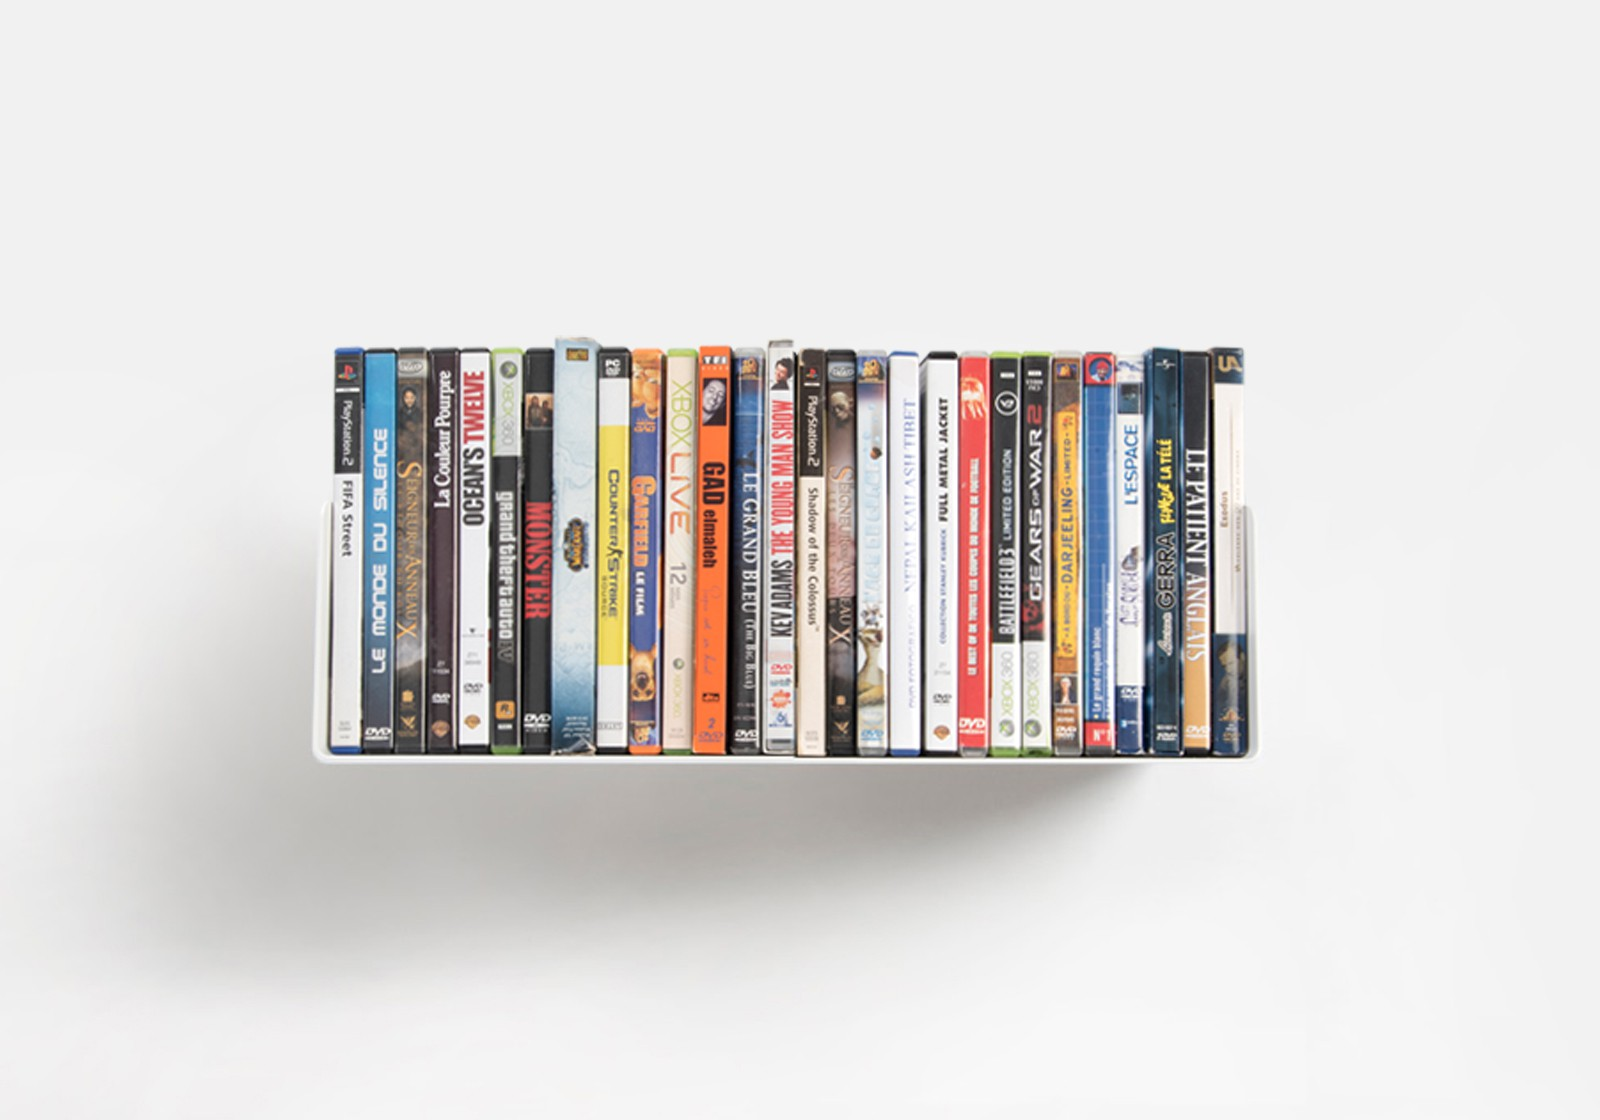 Wall To Wall Shelves dvd wall shelf usdvd - 45 cm